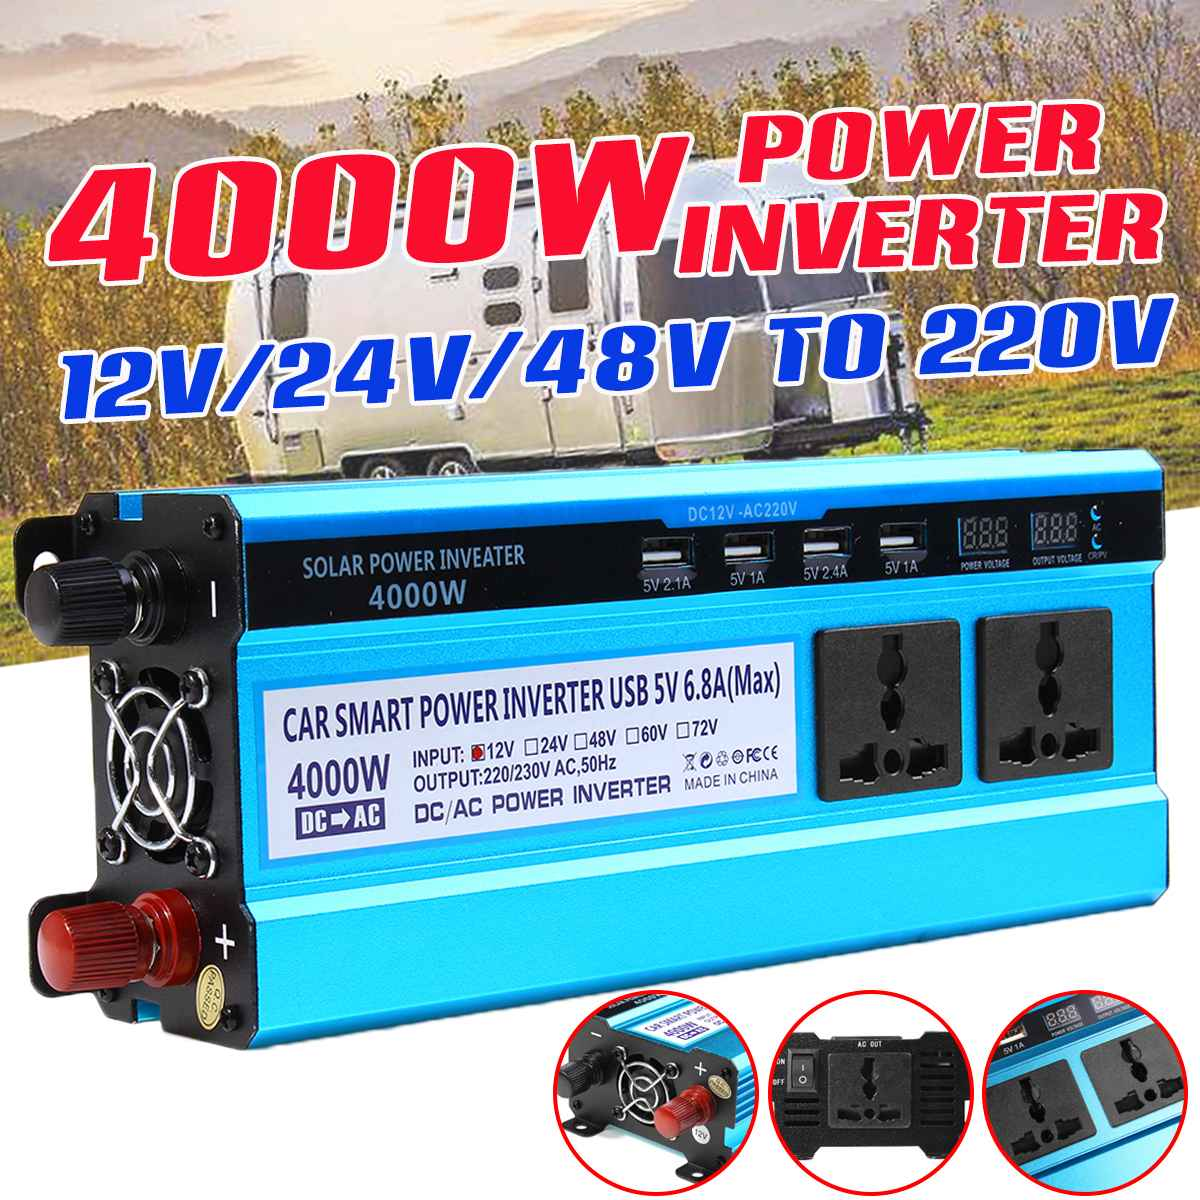 <font><b>4000W</b></font> <font><b>Inverter</b></font> <font><b>12V</b></font>/24V/48V to 220V Voltage Converter Transformer Double LED Display 4 USB Solar Power <font><b>Inverter</b></font> image